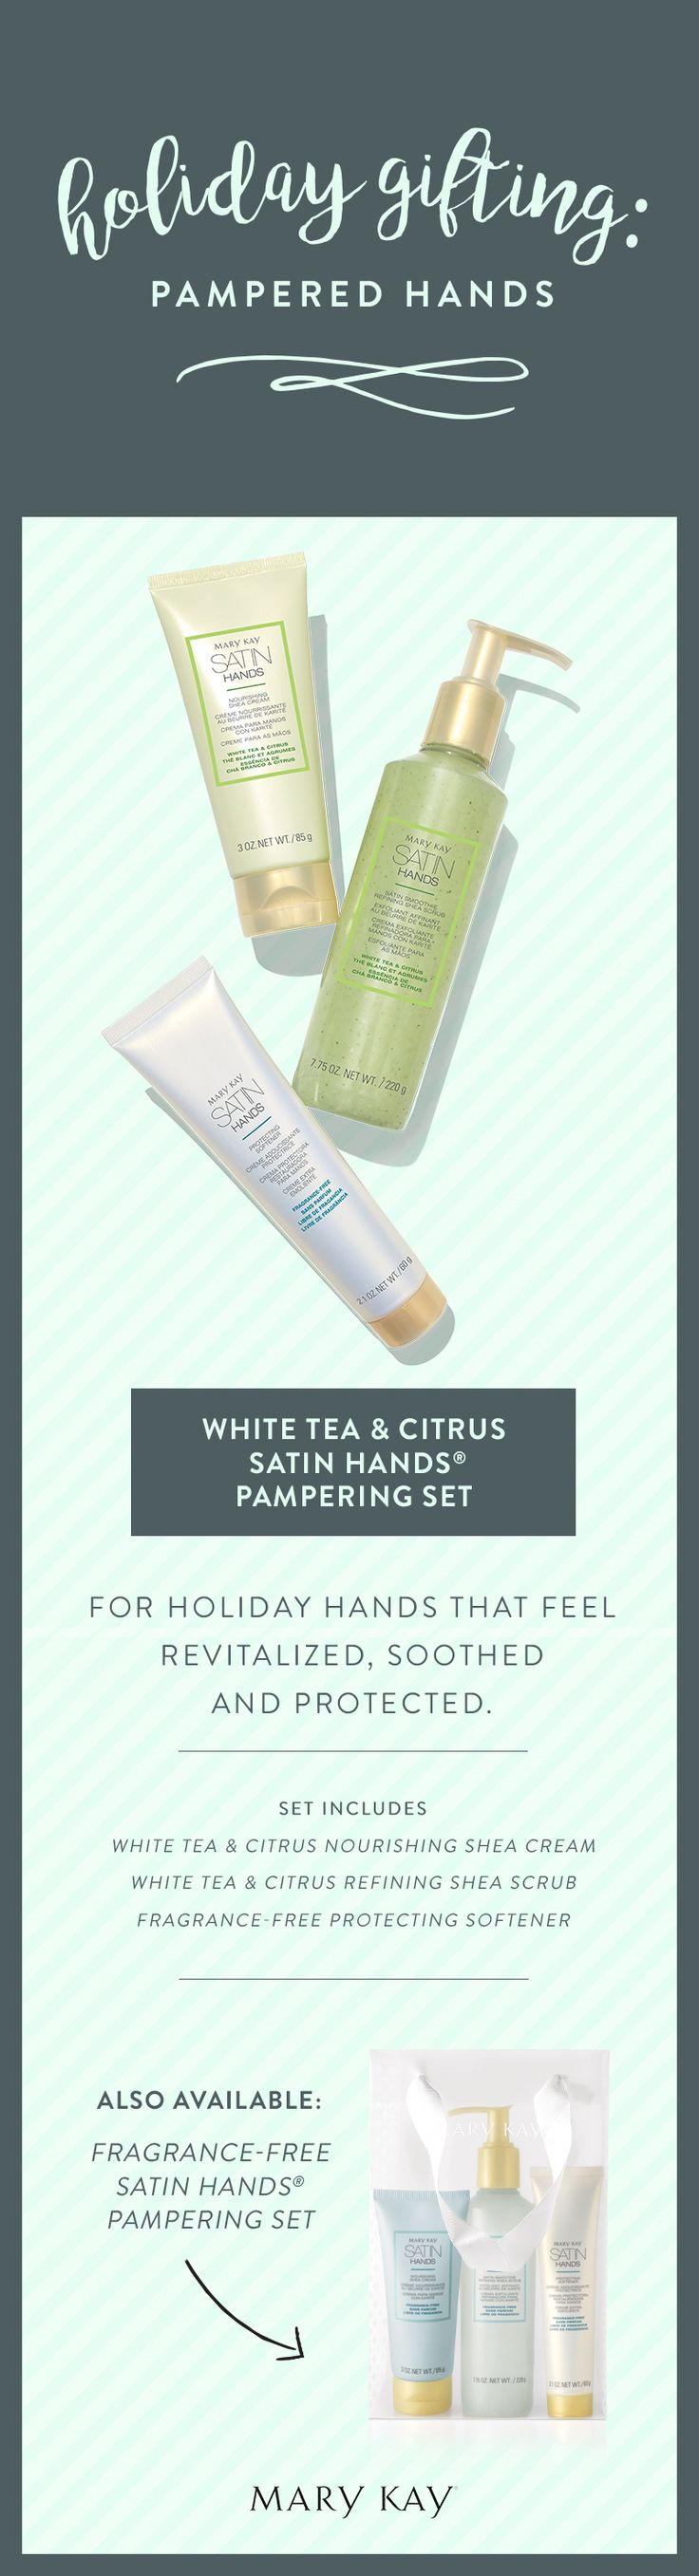 For holiday hands that feel revitalized, soothed and protected, gift her the White Tea & Citrus Satin Hands® Pampering Set. | Mary Kay